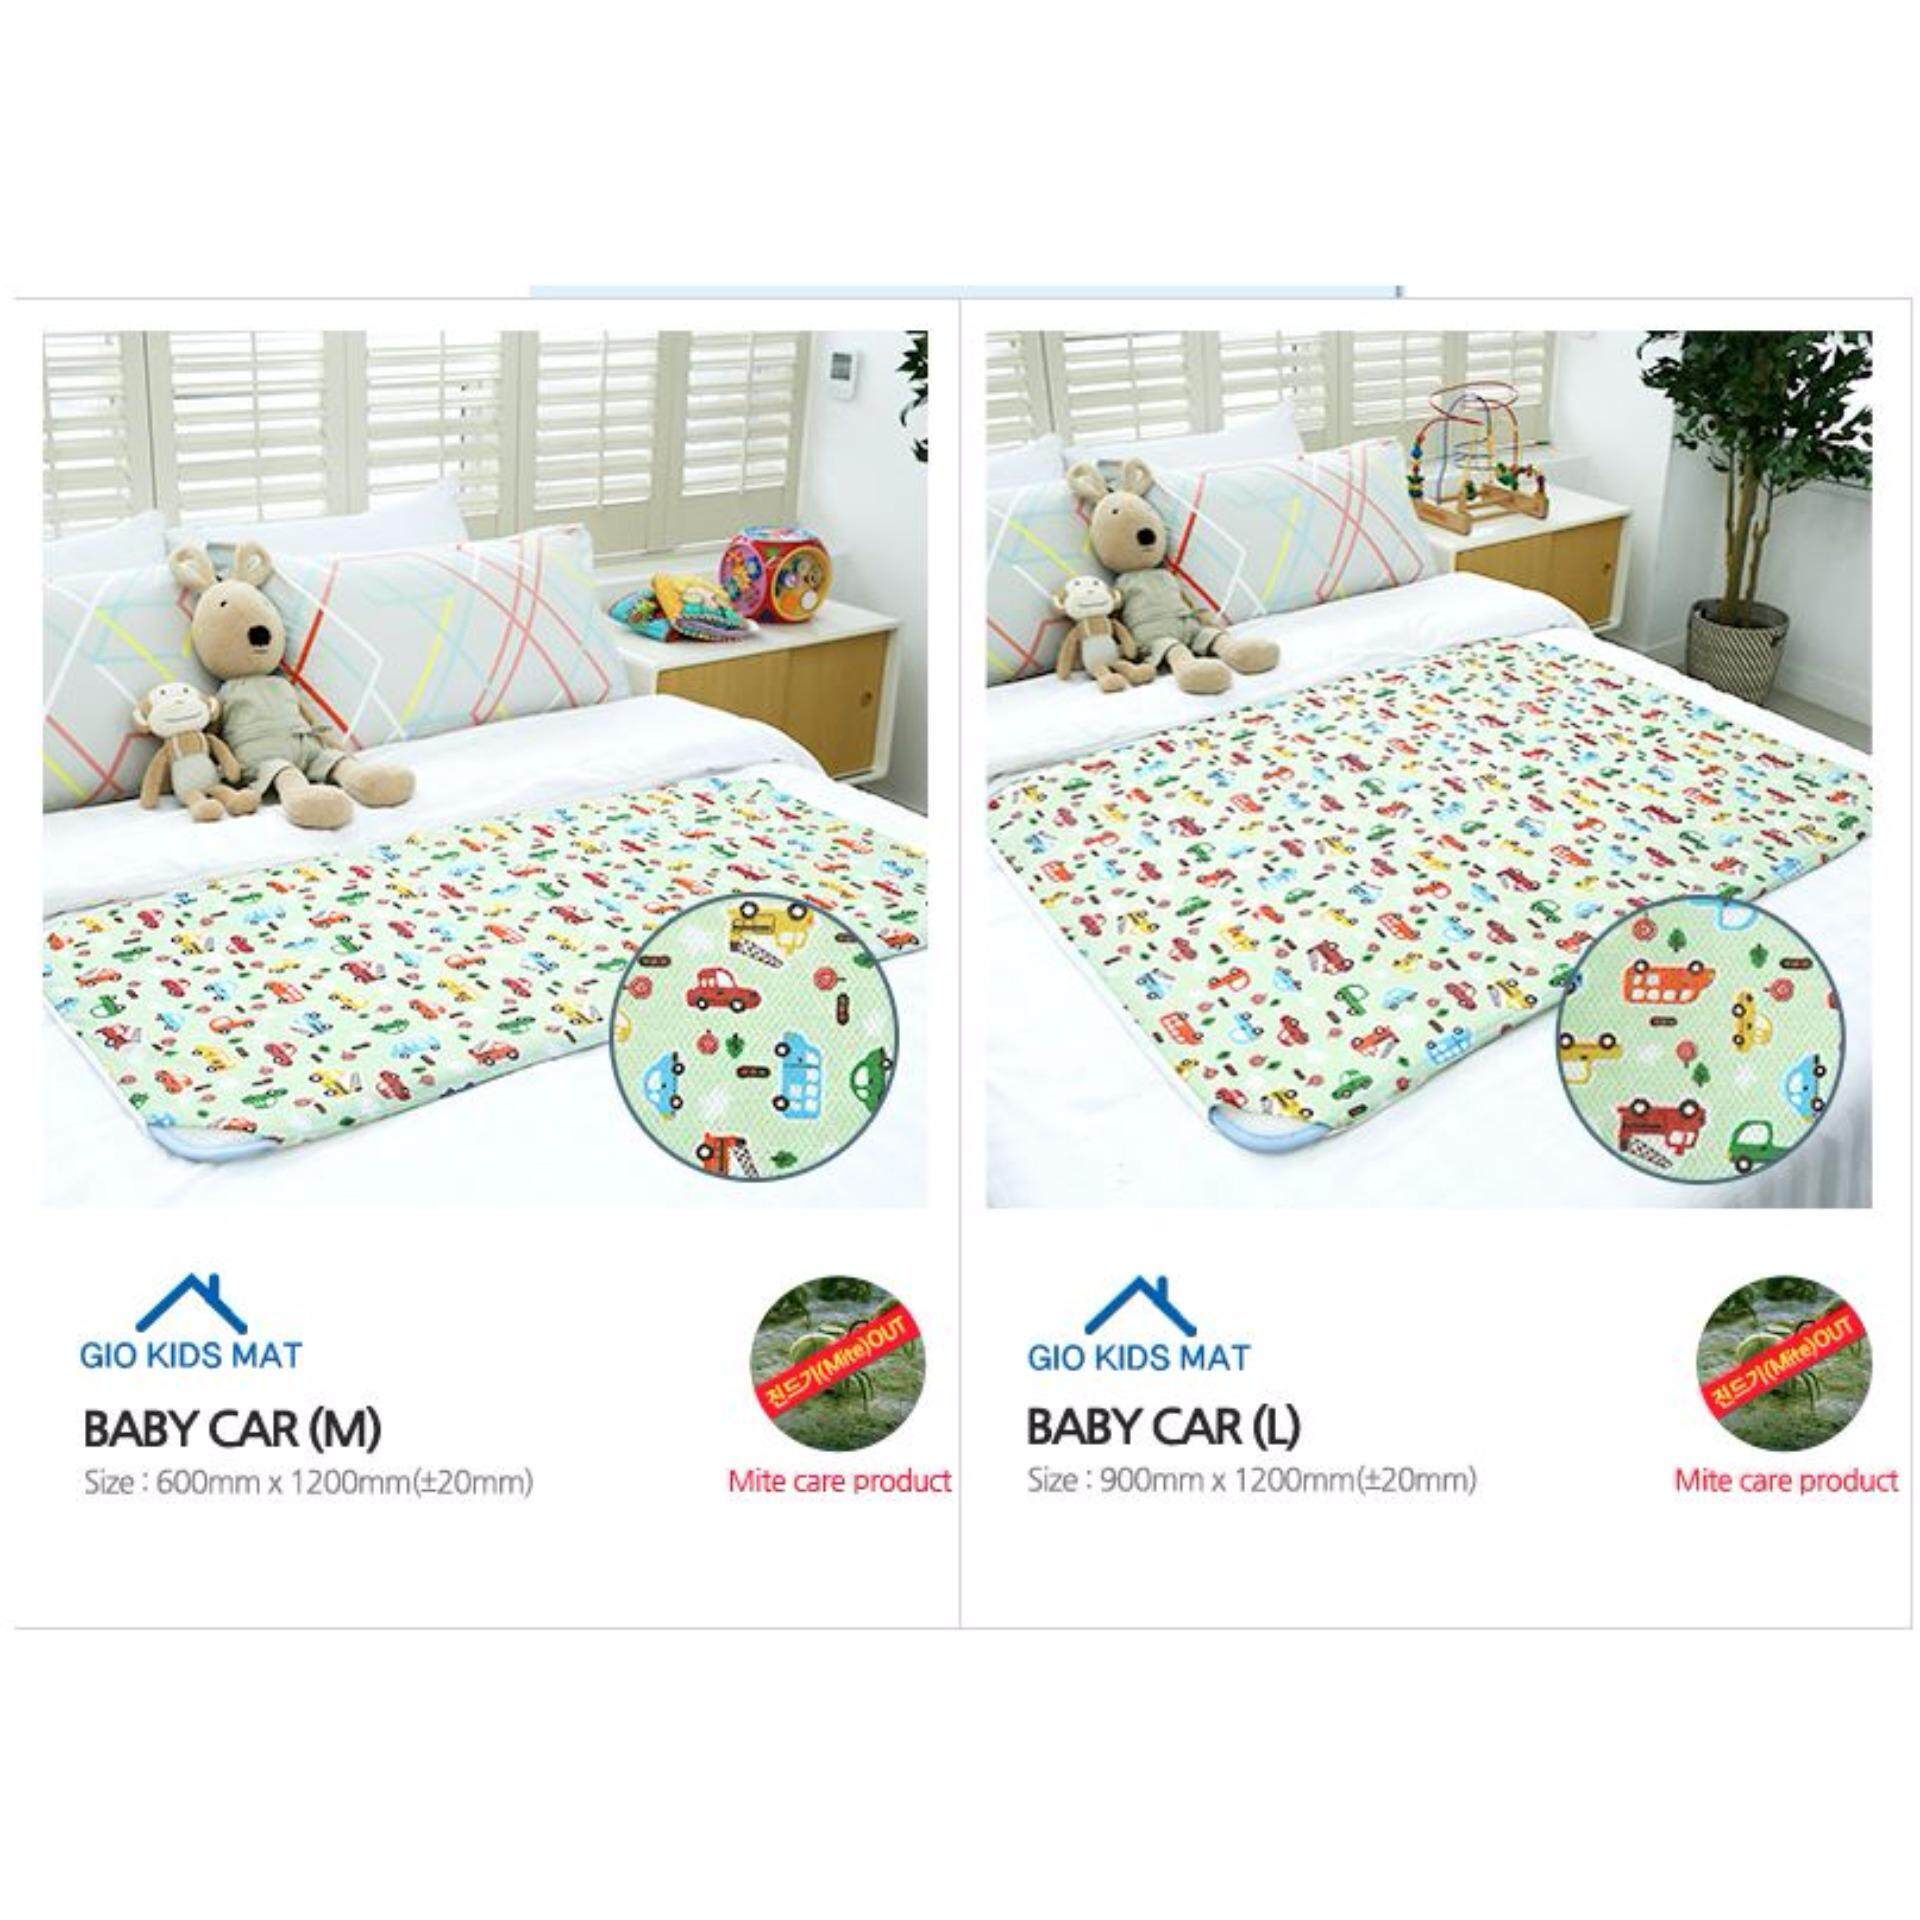 GIO KIDS MAT 2 in 1 Baby Car M Size with Carrier Bag